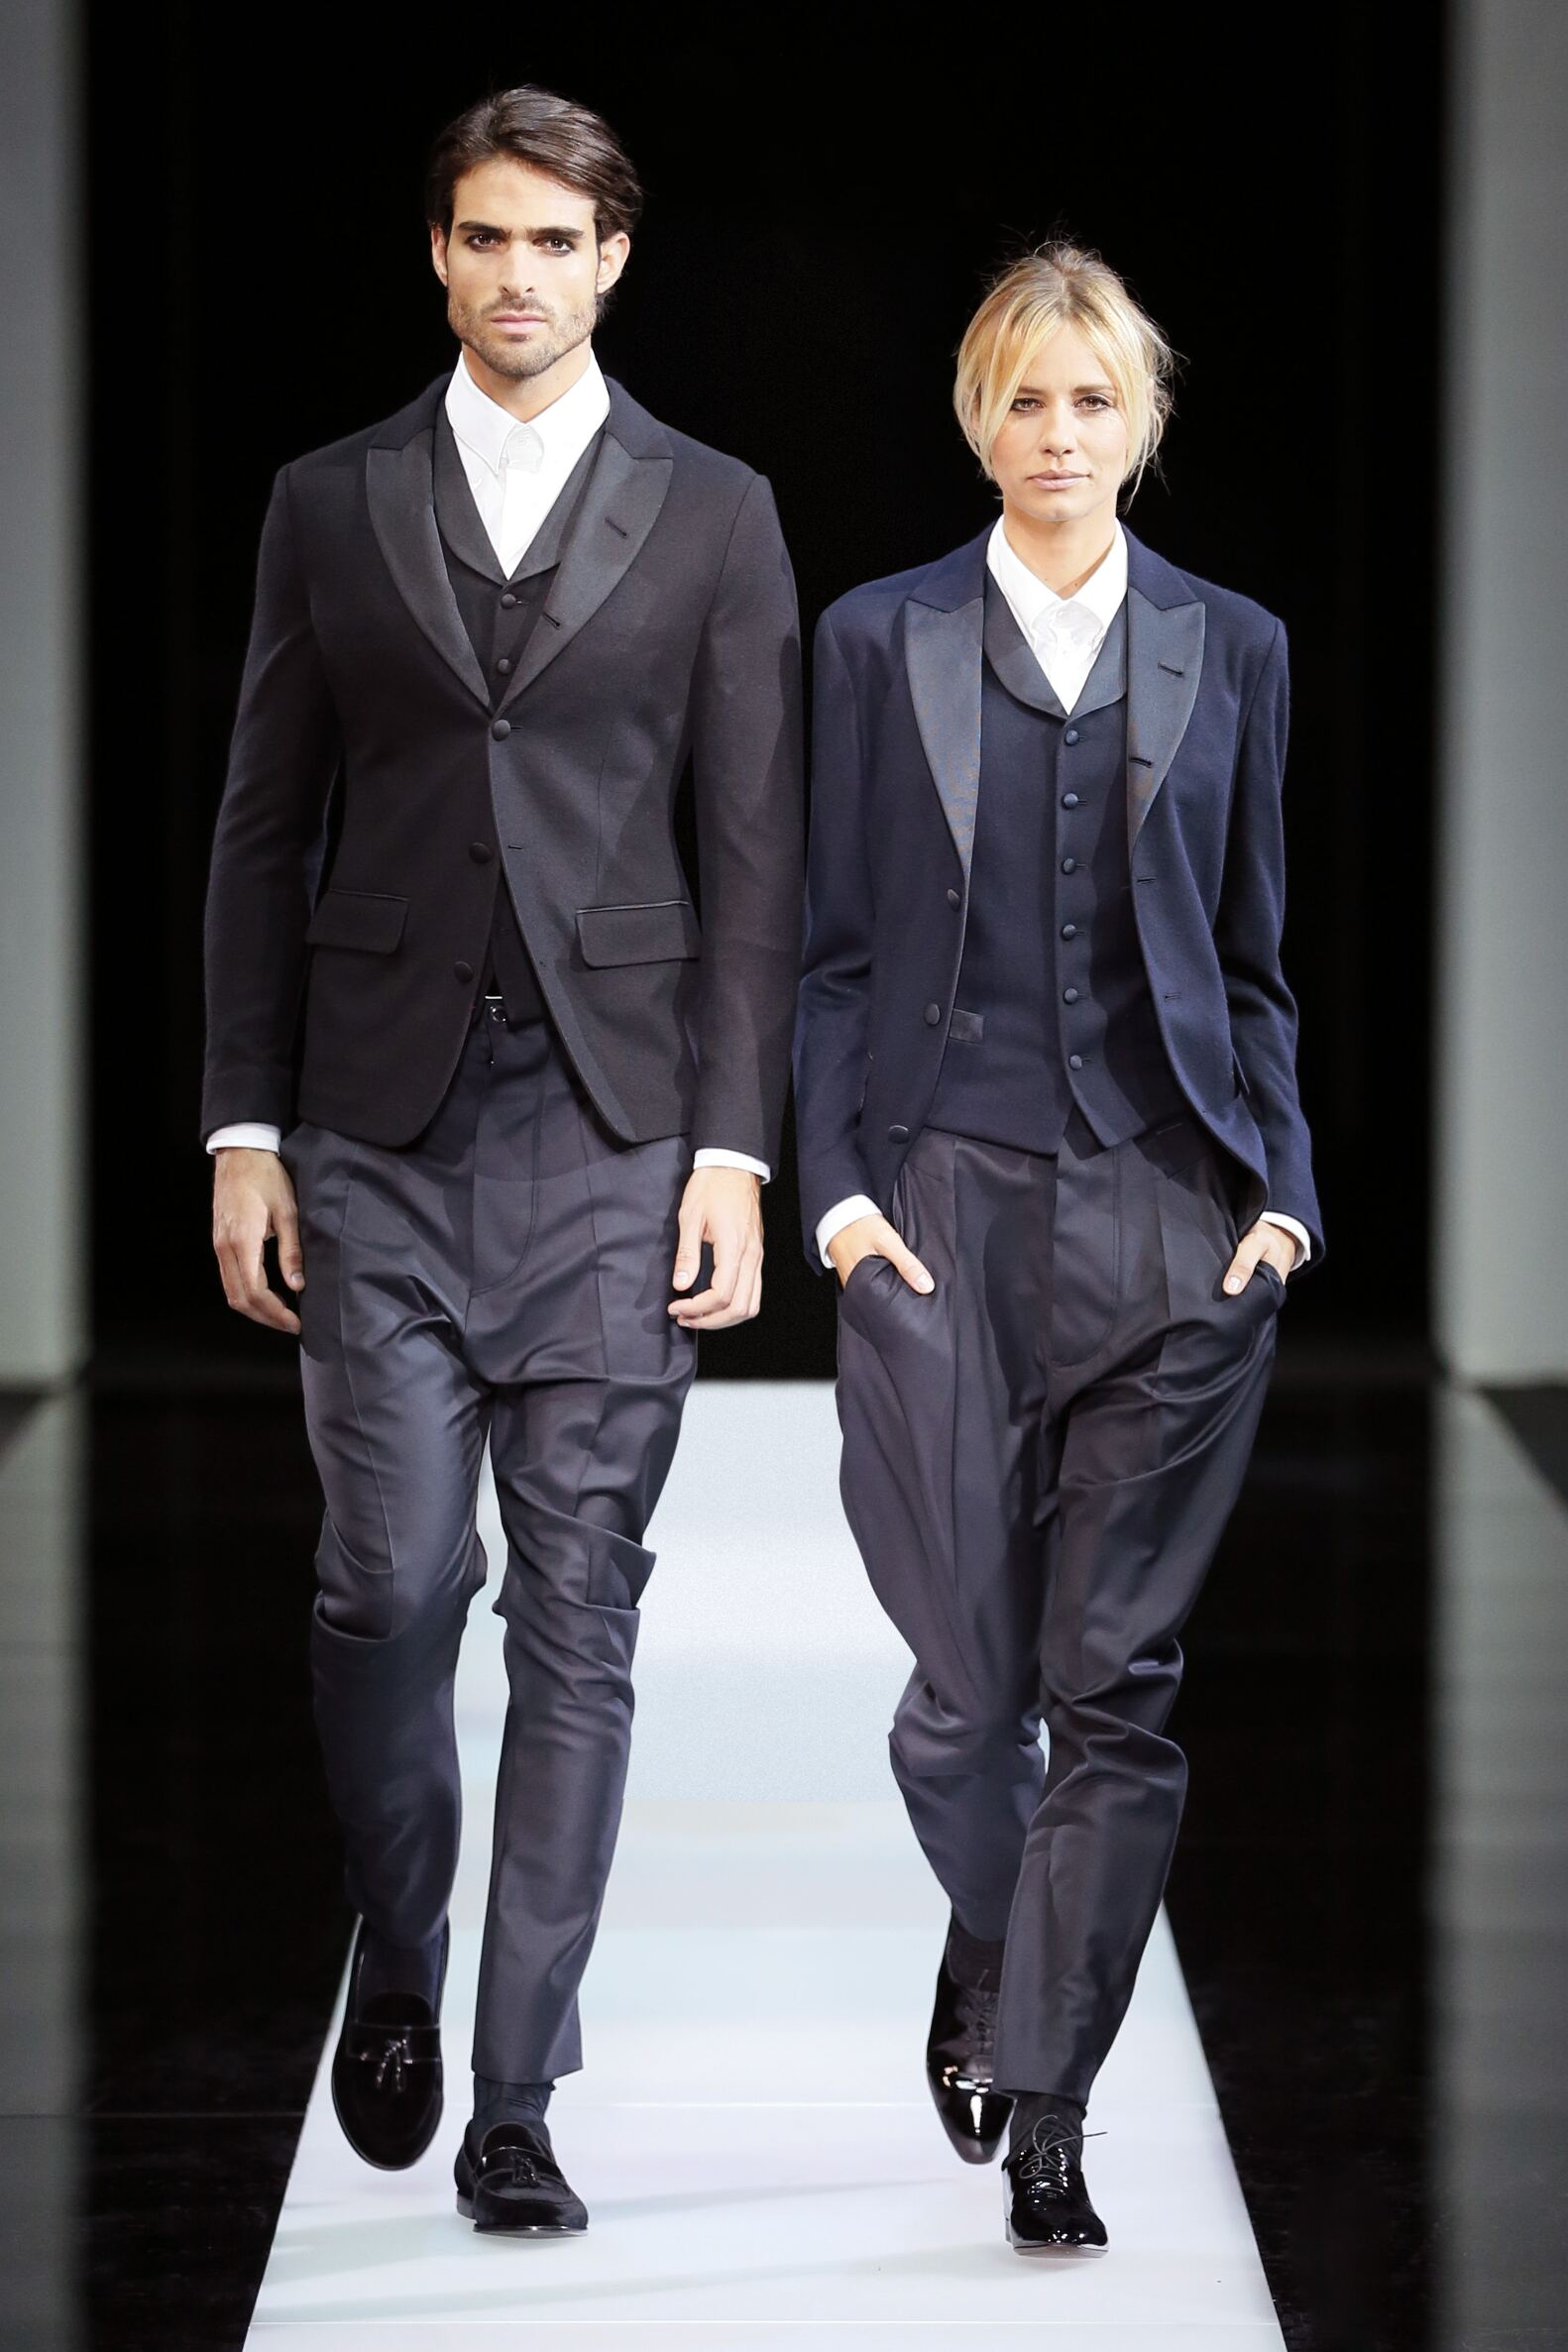 Autumn Giorgio Armani Collection Fashion Man and Woman